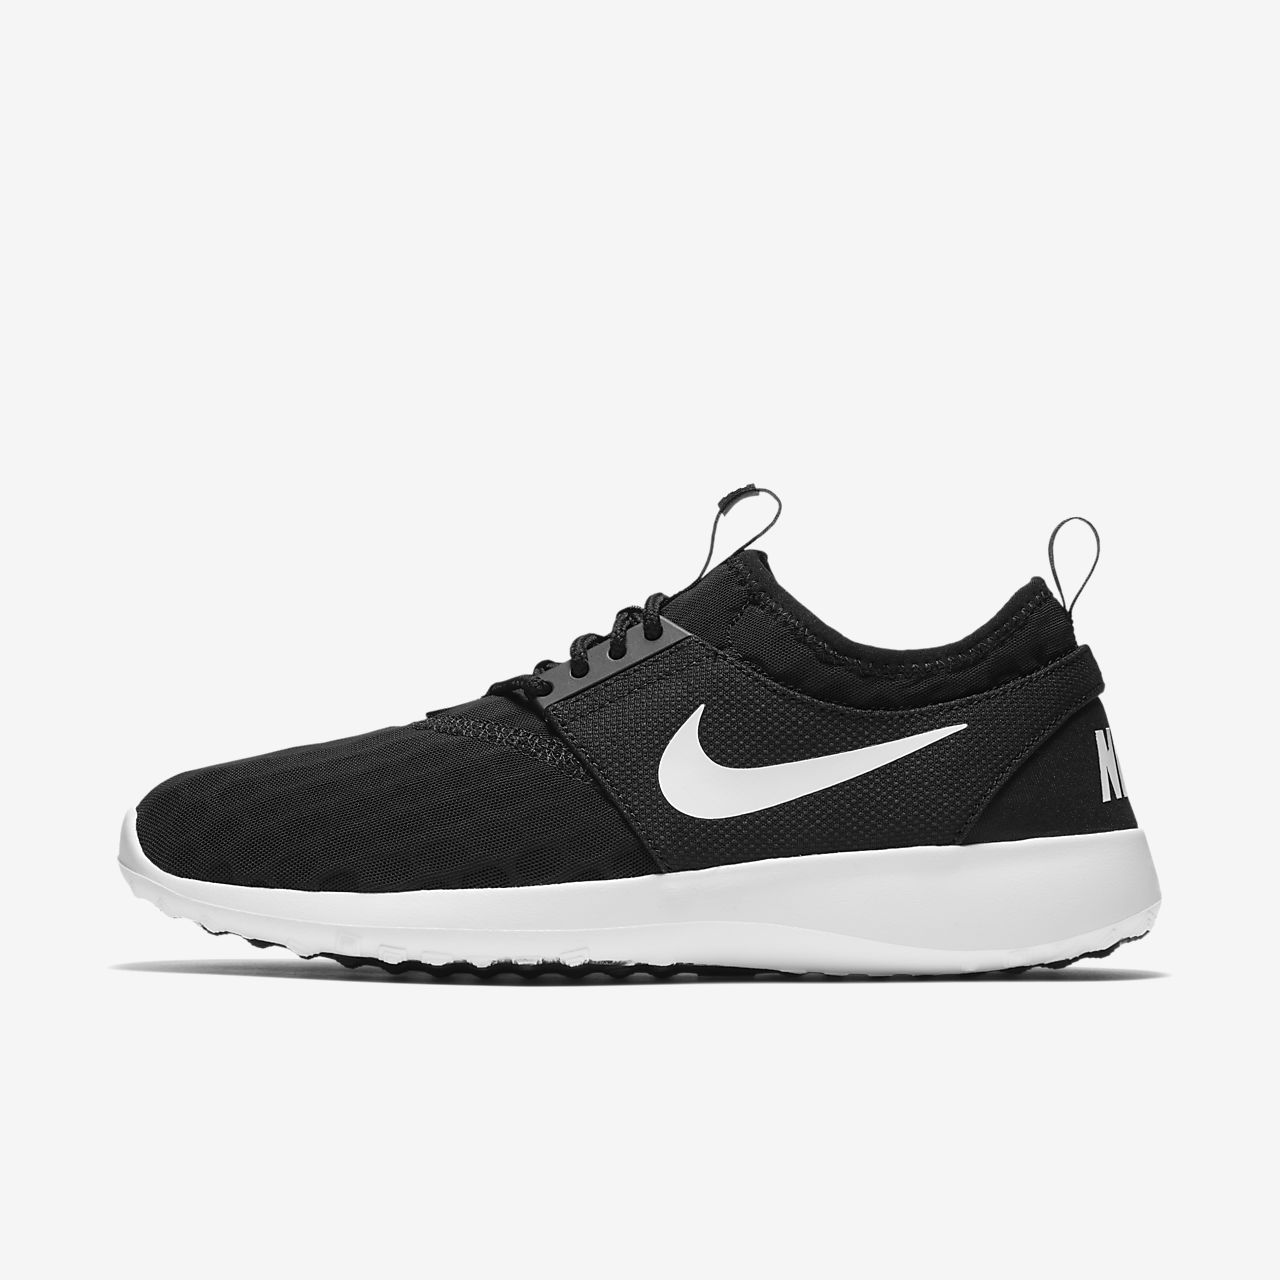 Low Resolution Nike Juvenate Women s Shoe Nike Juvenate Women s Shoe 920a6b561